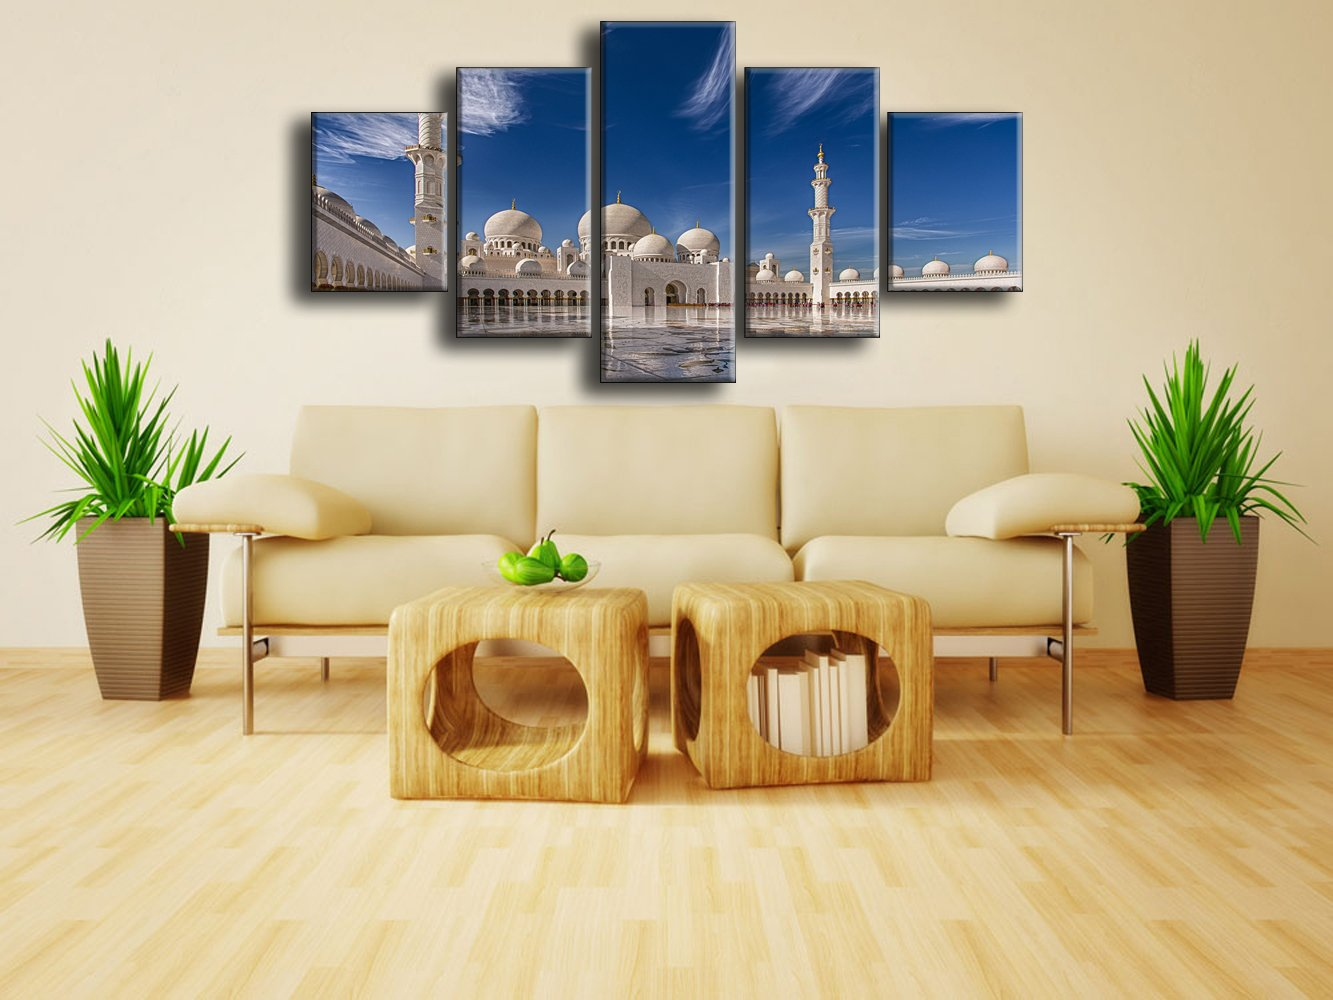 Amazon.com: Extra Large Modern Mosque Printed Painting on Canvas 5 ...